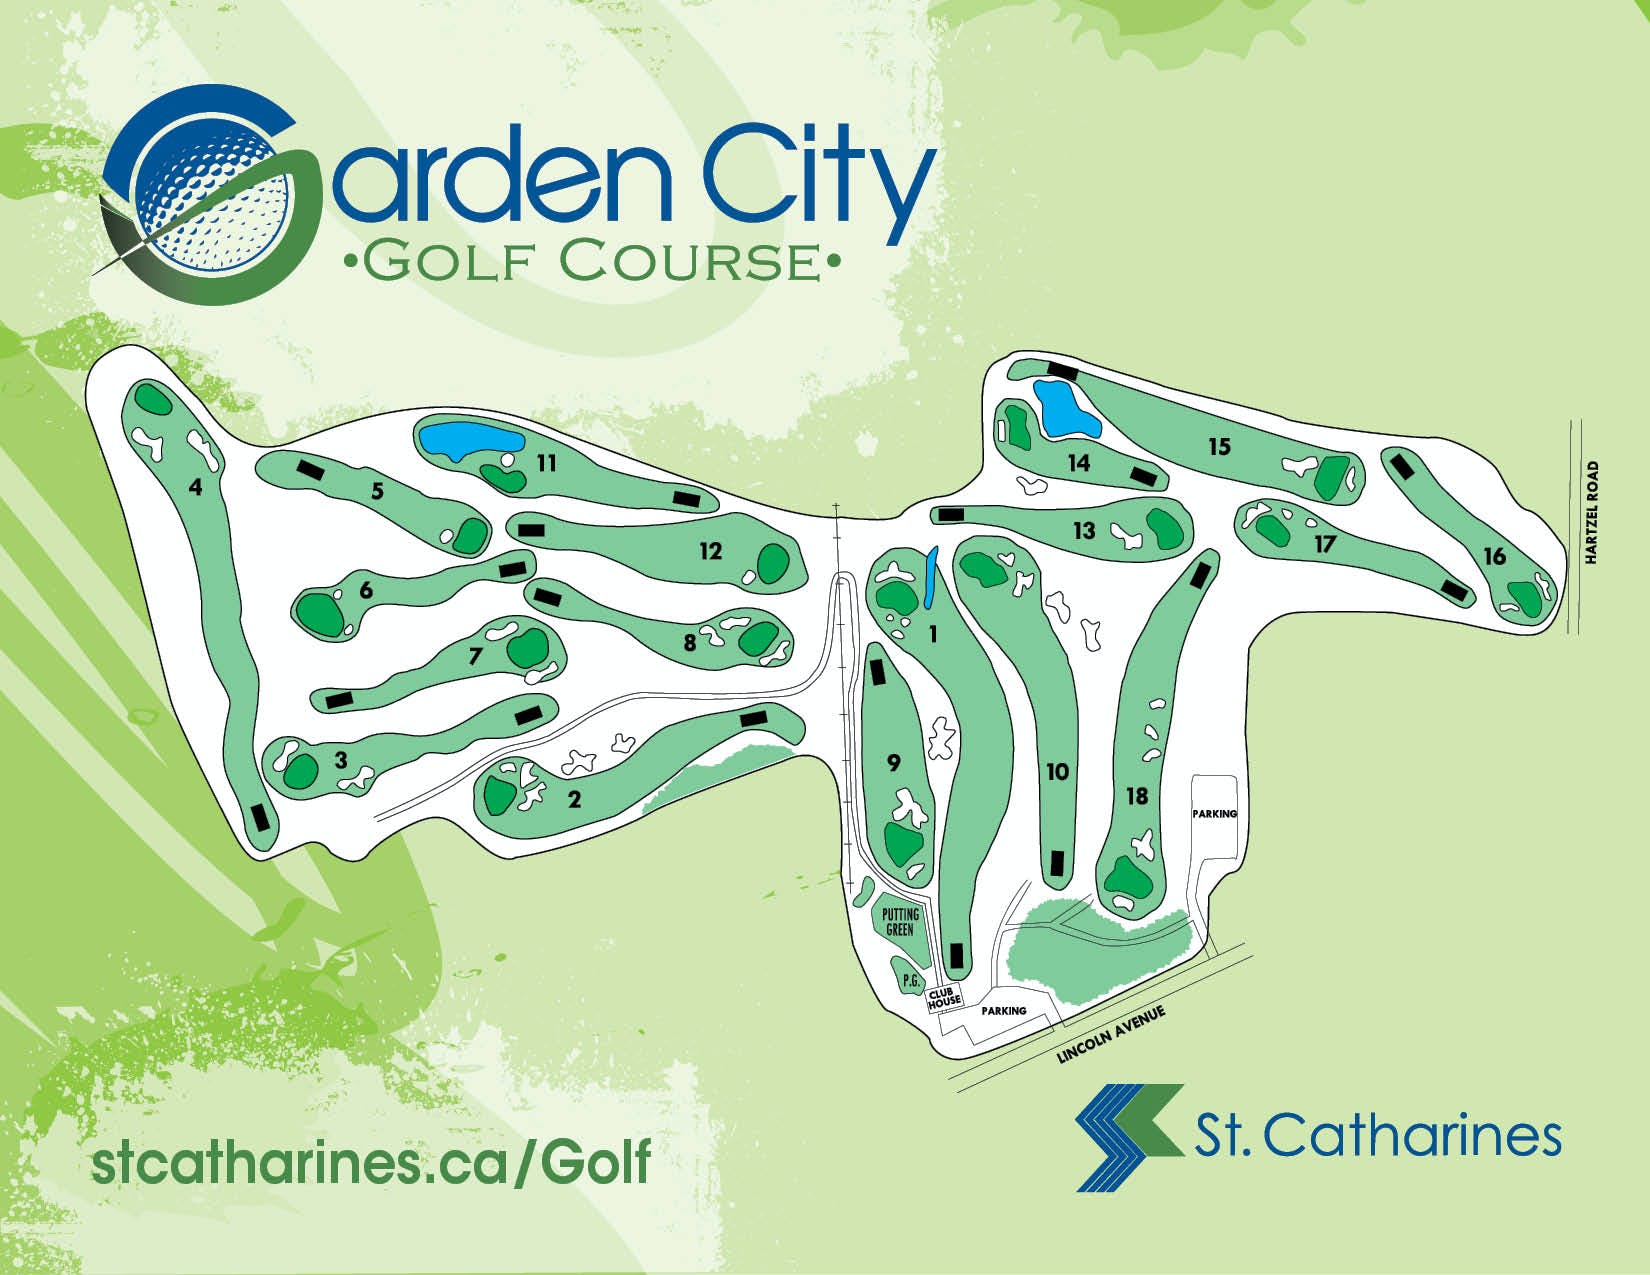 Garden City Golf Course layout